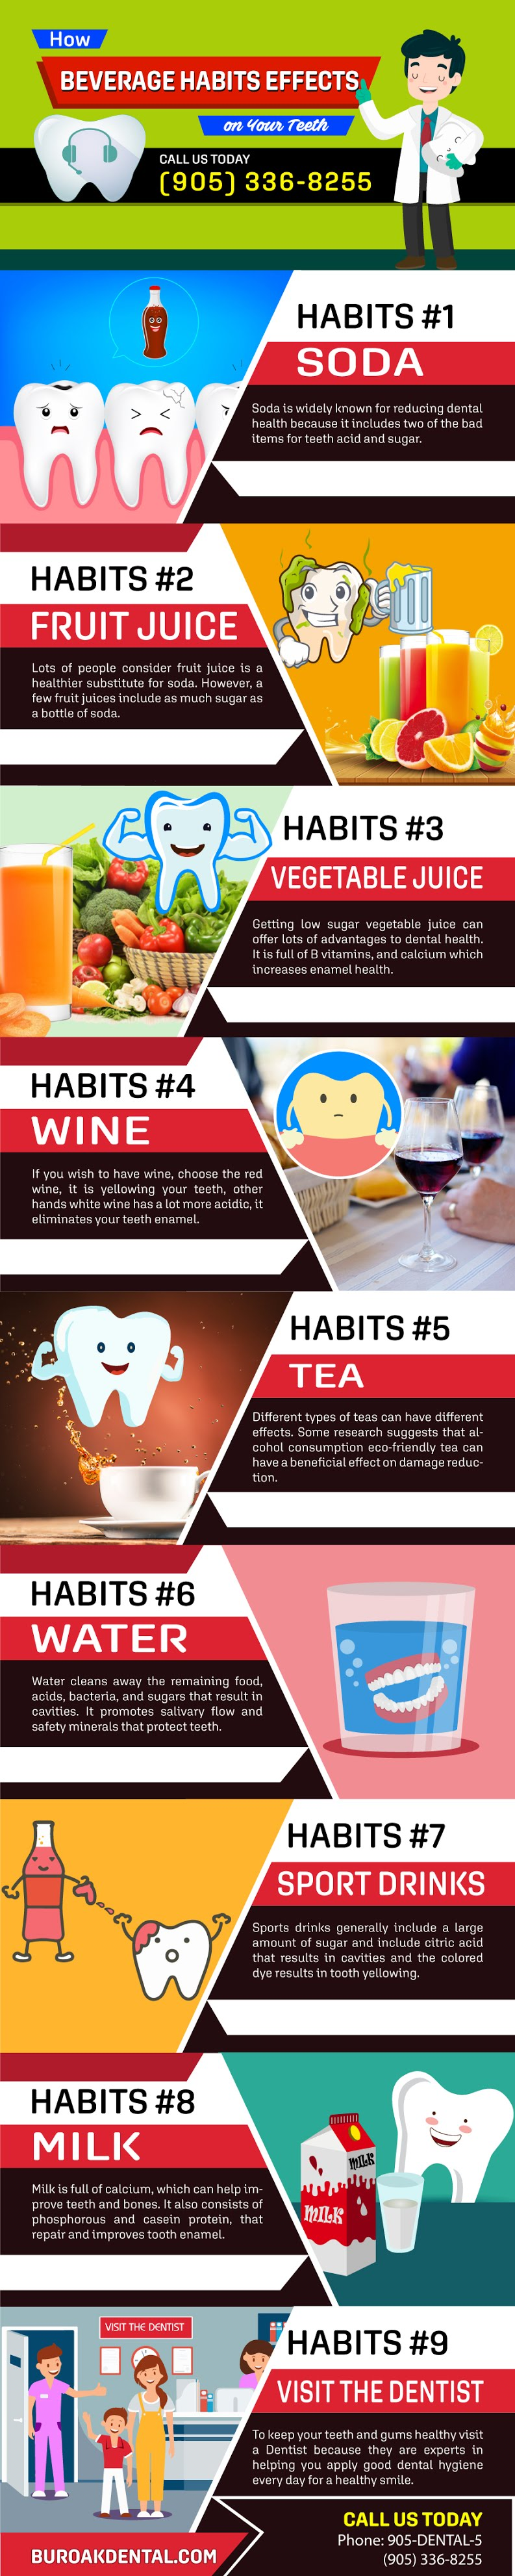 How Beverage Habits Effects on Your Teeth